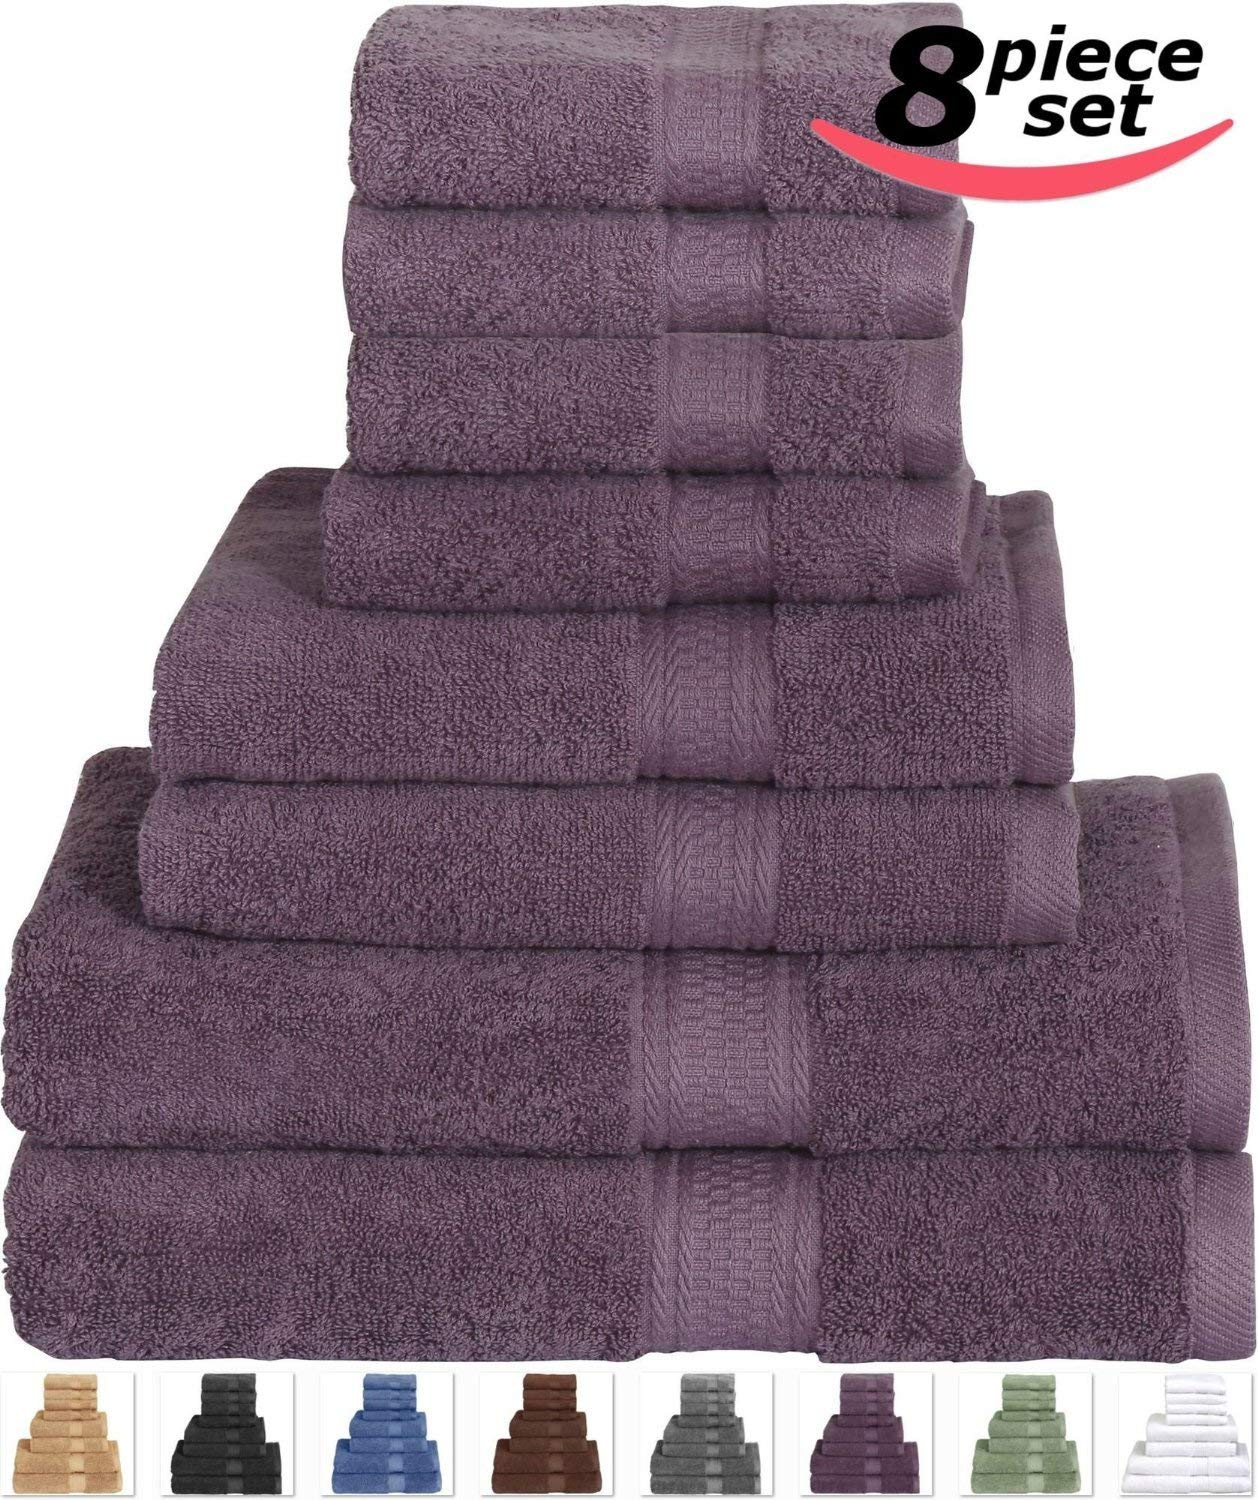 Plum Bath Towel Set 8-Piece Includes 2 Bath Towels, 2 Hand Towels, and 4 Washcloths 100% cotton Order Now! With E-book Gift@